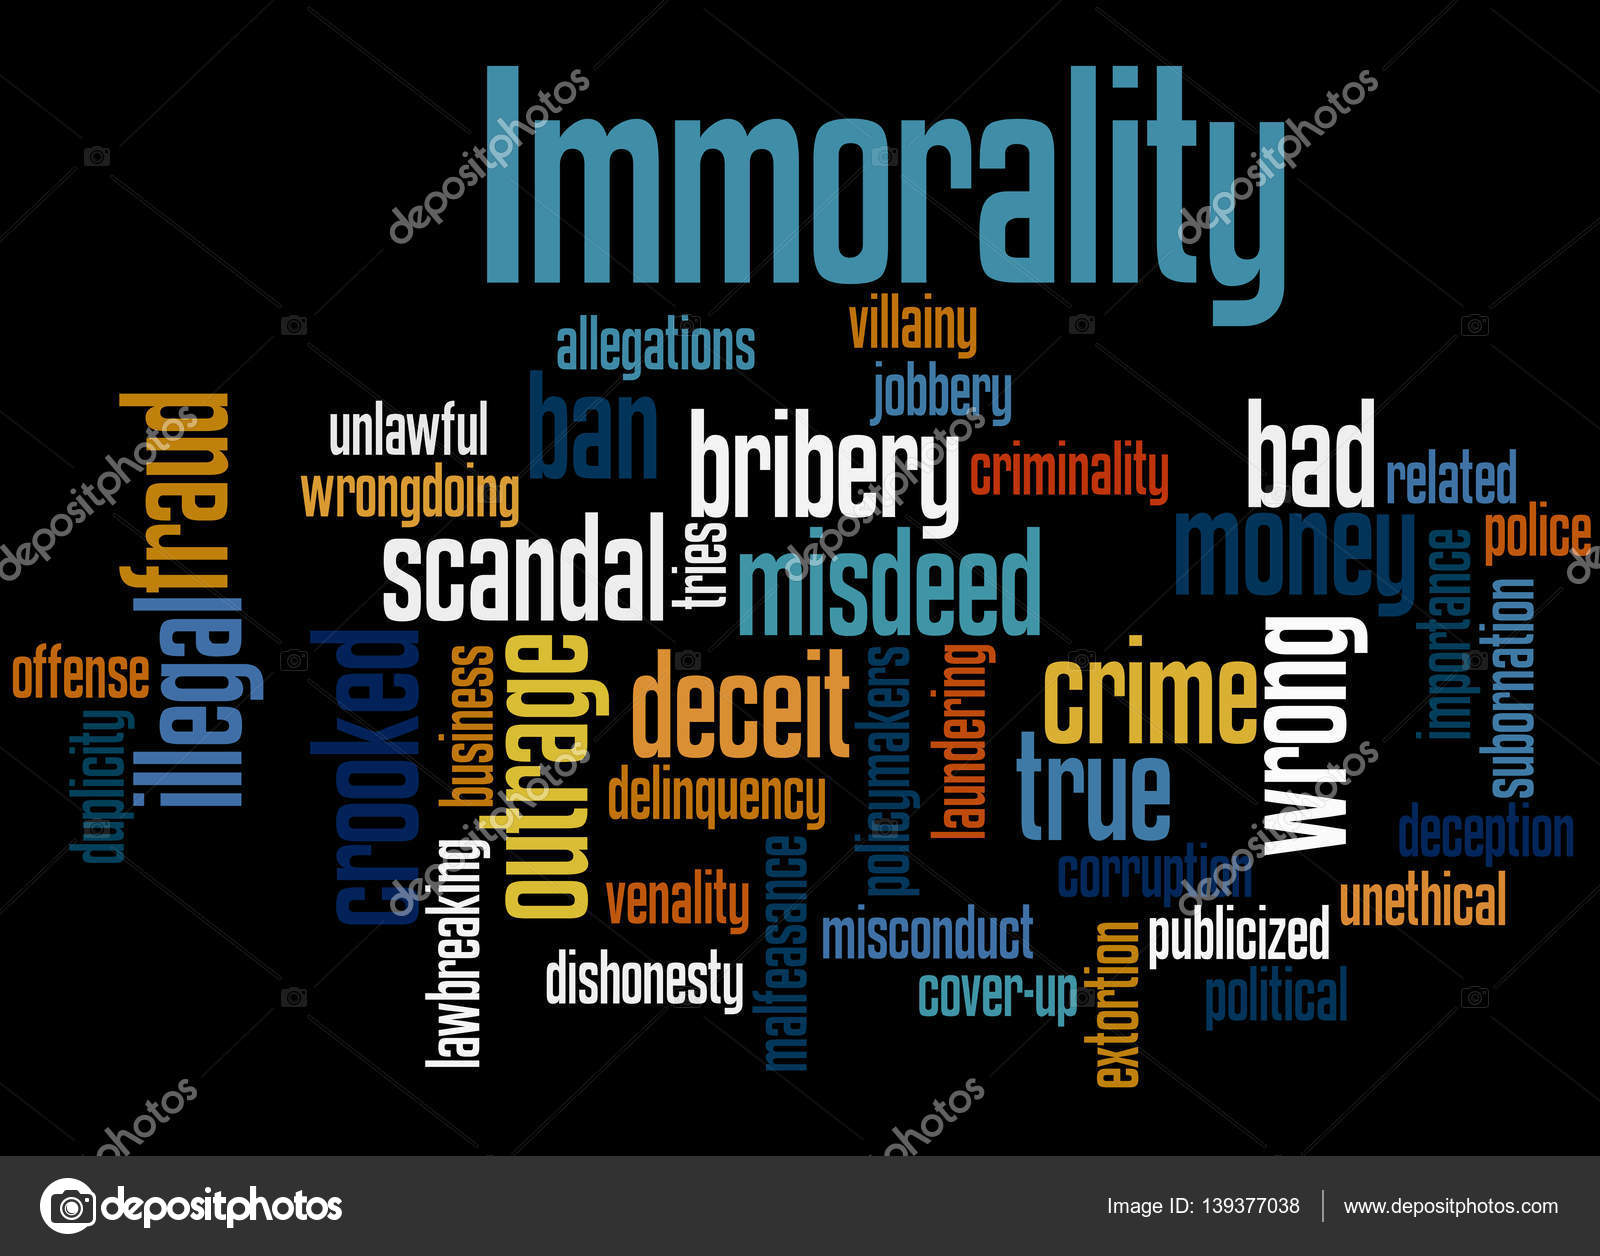 Image result for immorality